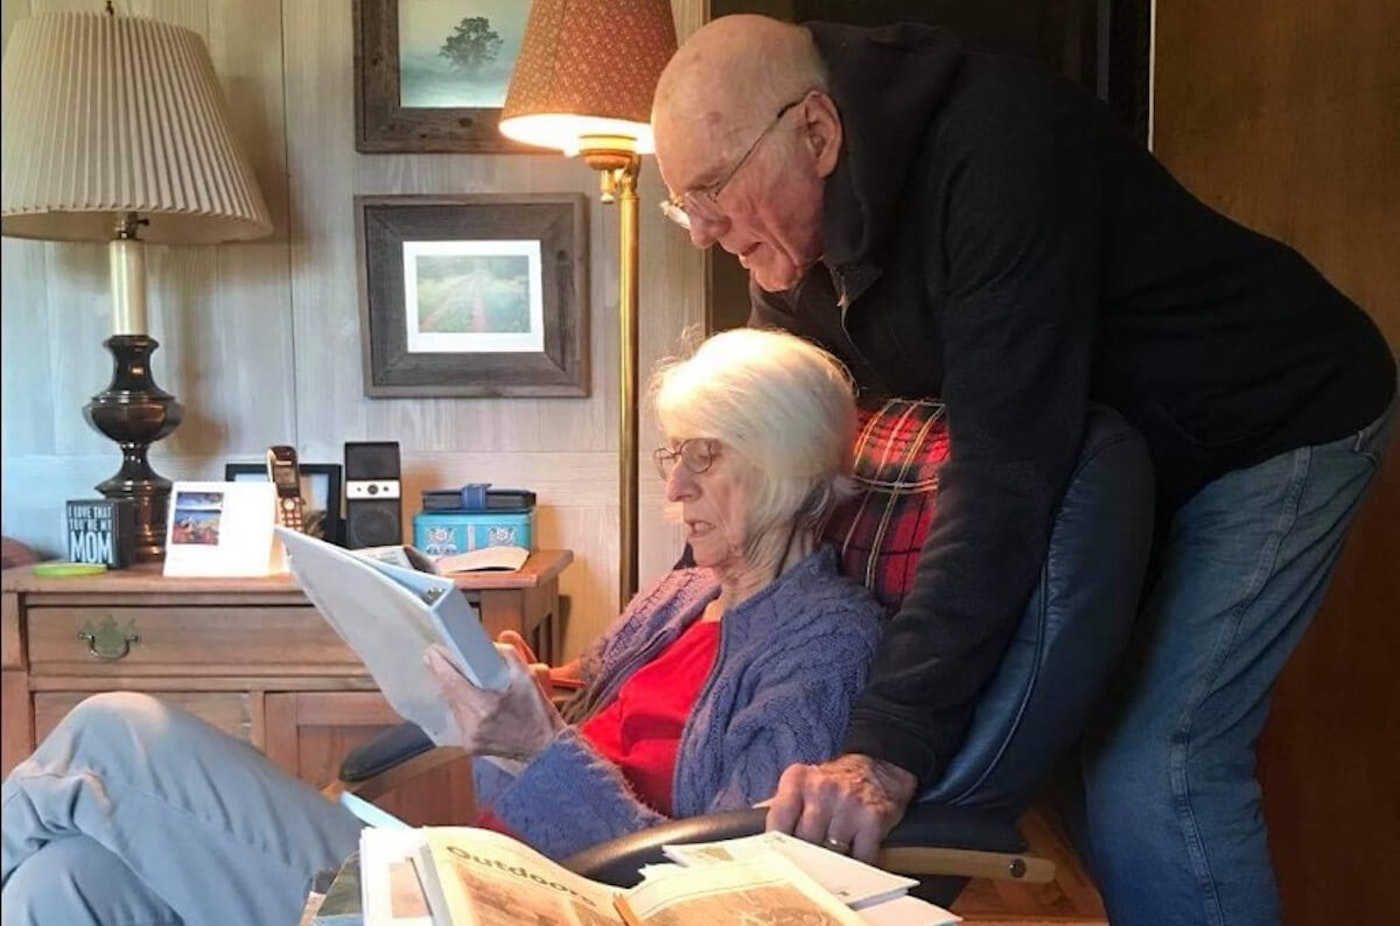 William Cerny and his wife, JoAnne, read together, one of many activities they enjoyed doing as a couple. William was extremely fit and energetic for his age, but he died Oct. 21, 2020, at age 89, just five days after contracting COVID-19. JoAnne tested positive as well but never exhibited symptoms of the illness. (Photo courtesy of Steve Cerny)